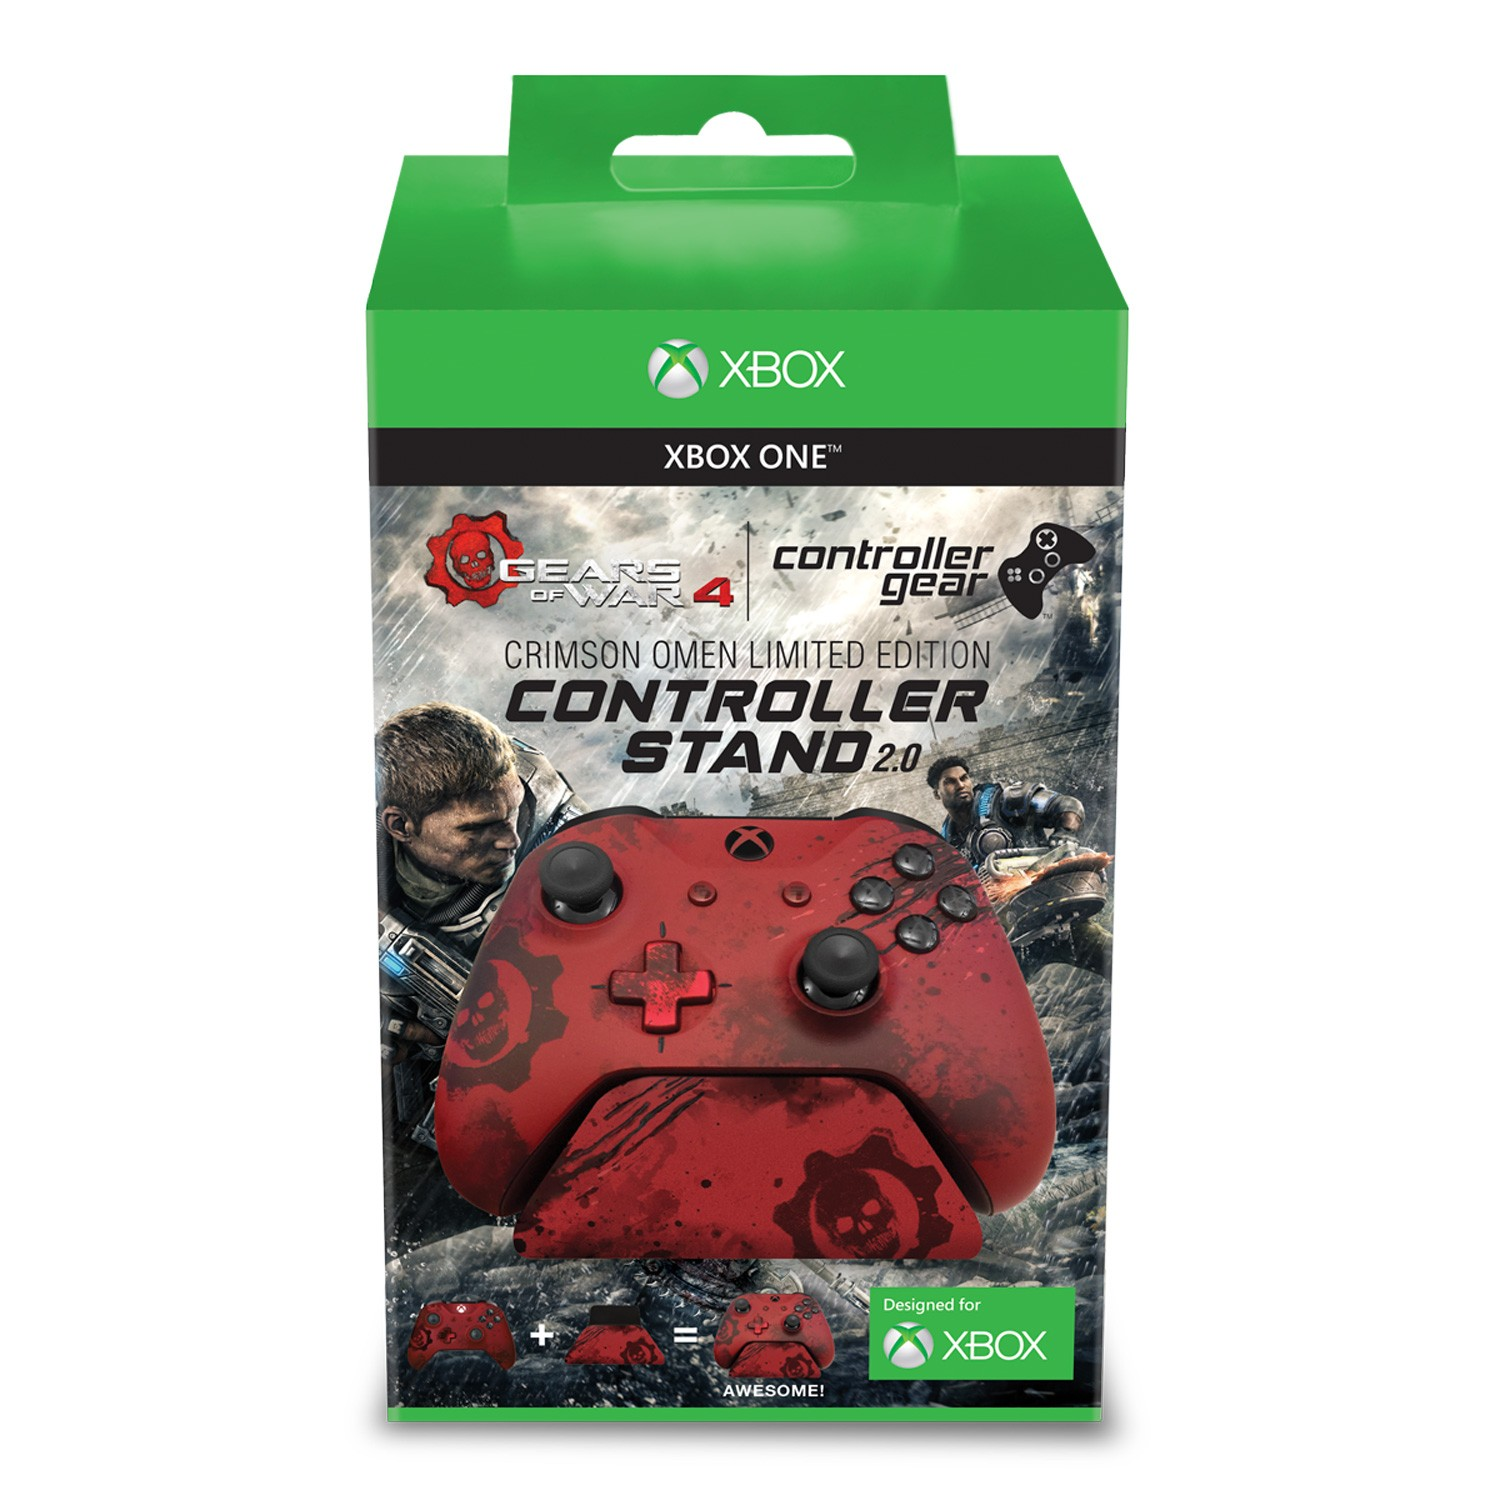 Gears of War 4 Crimson Omen - Limited Edition Controller Standᅠv2.0 - Red